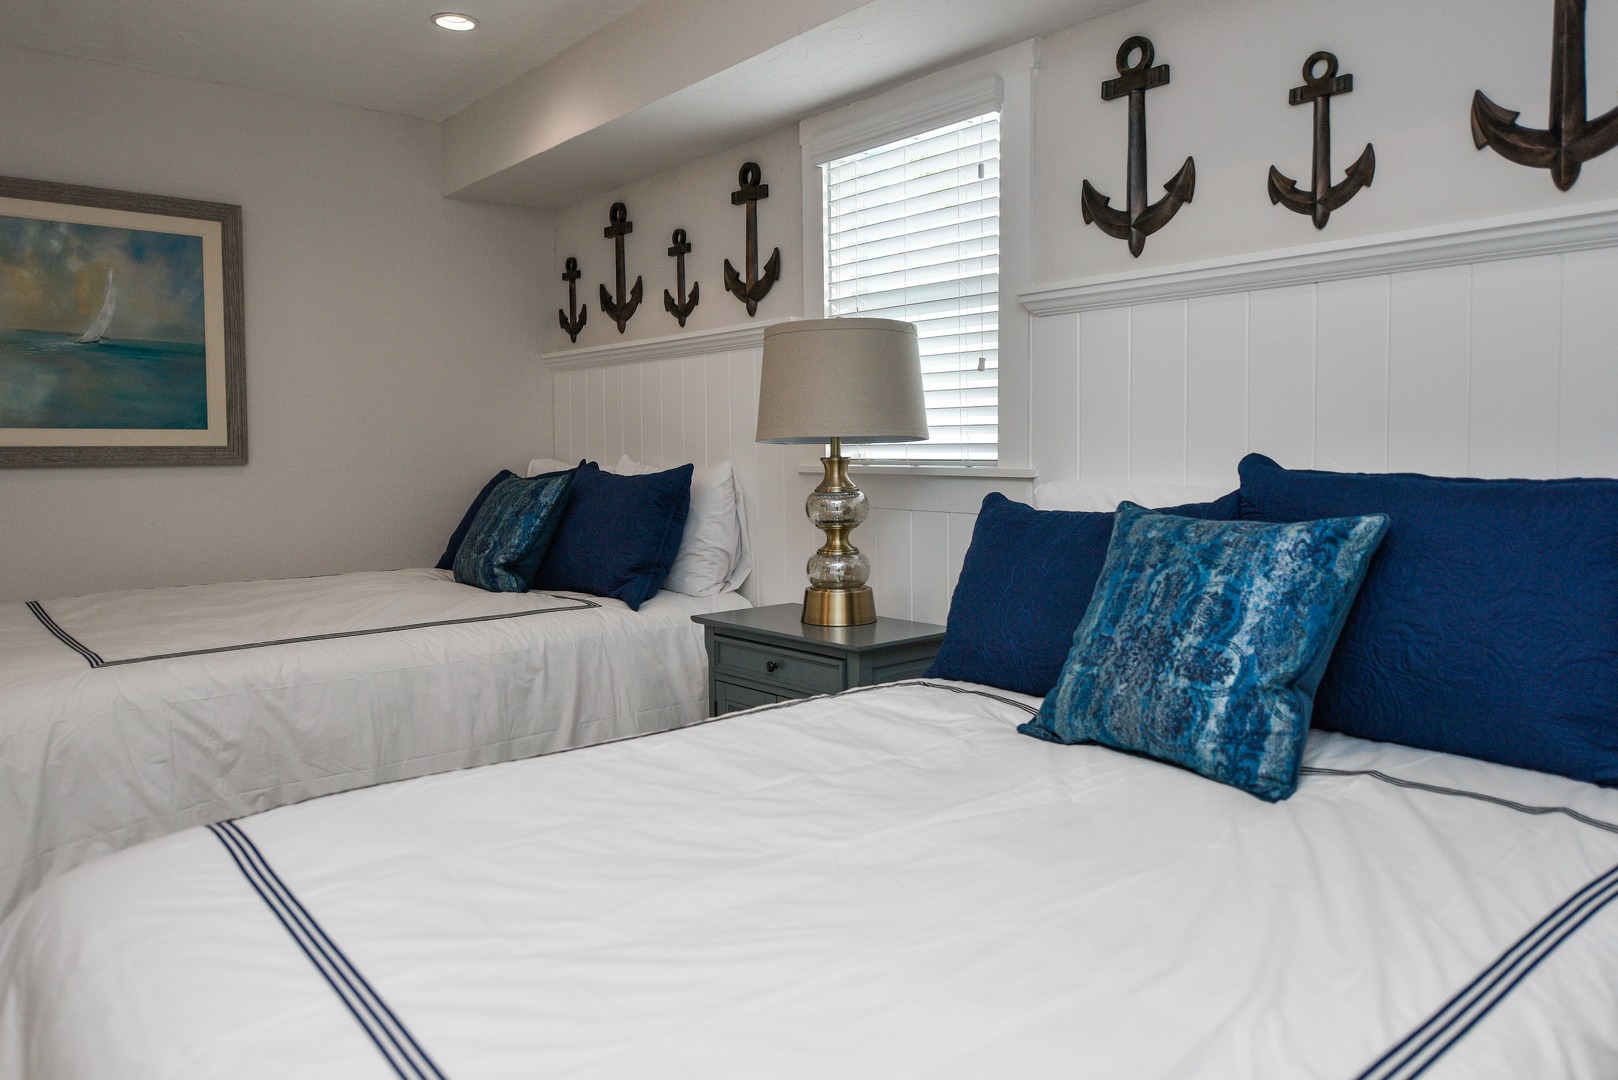 upgraded linens for comfort and rest